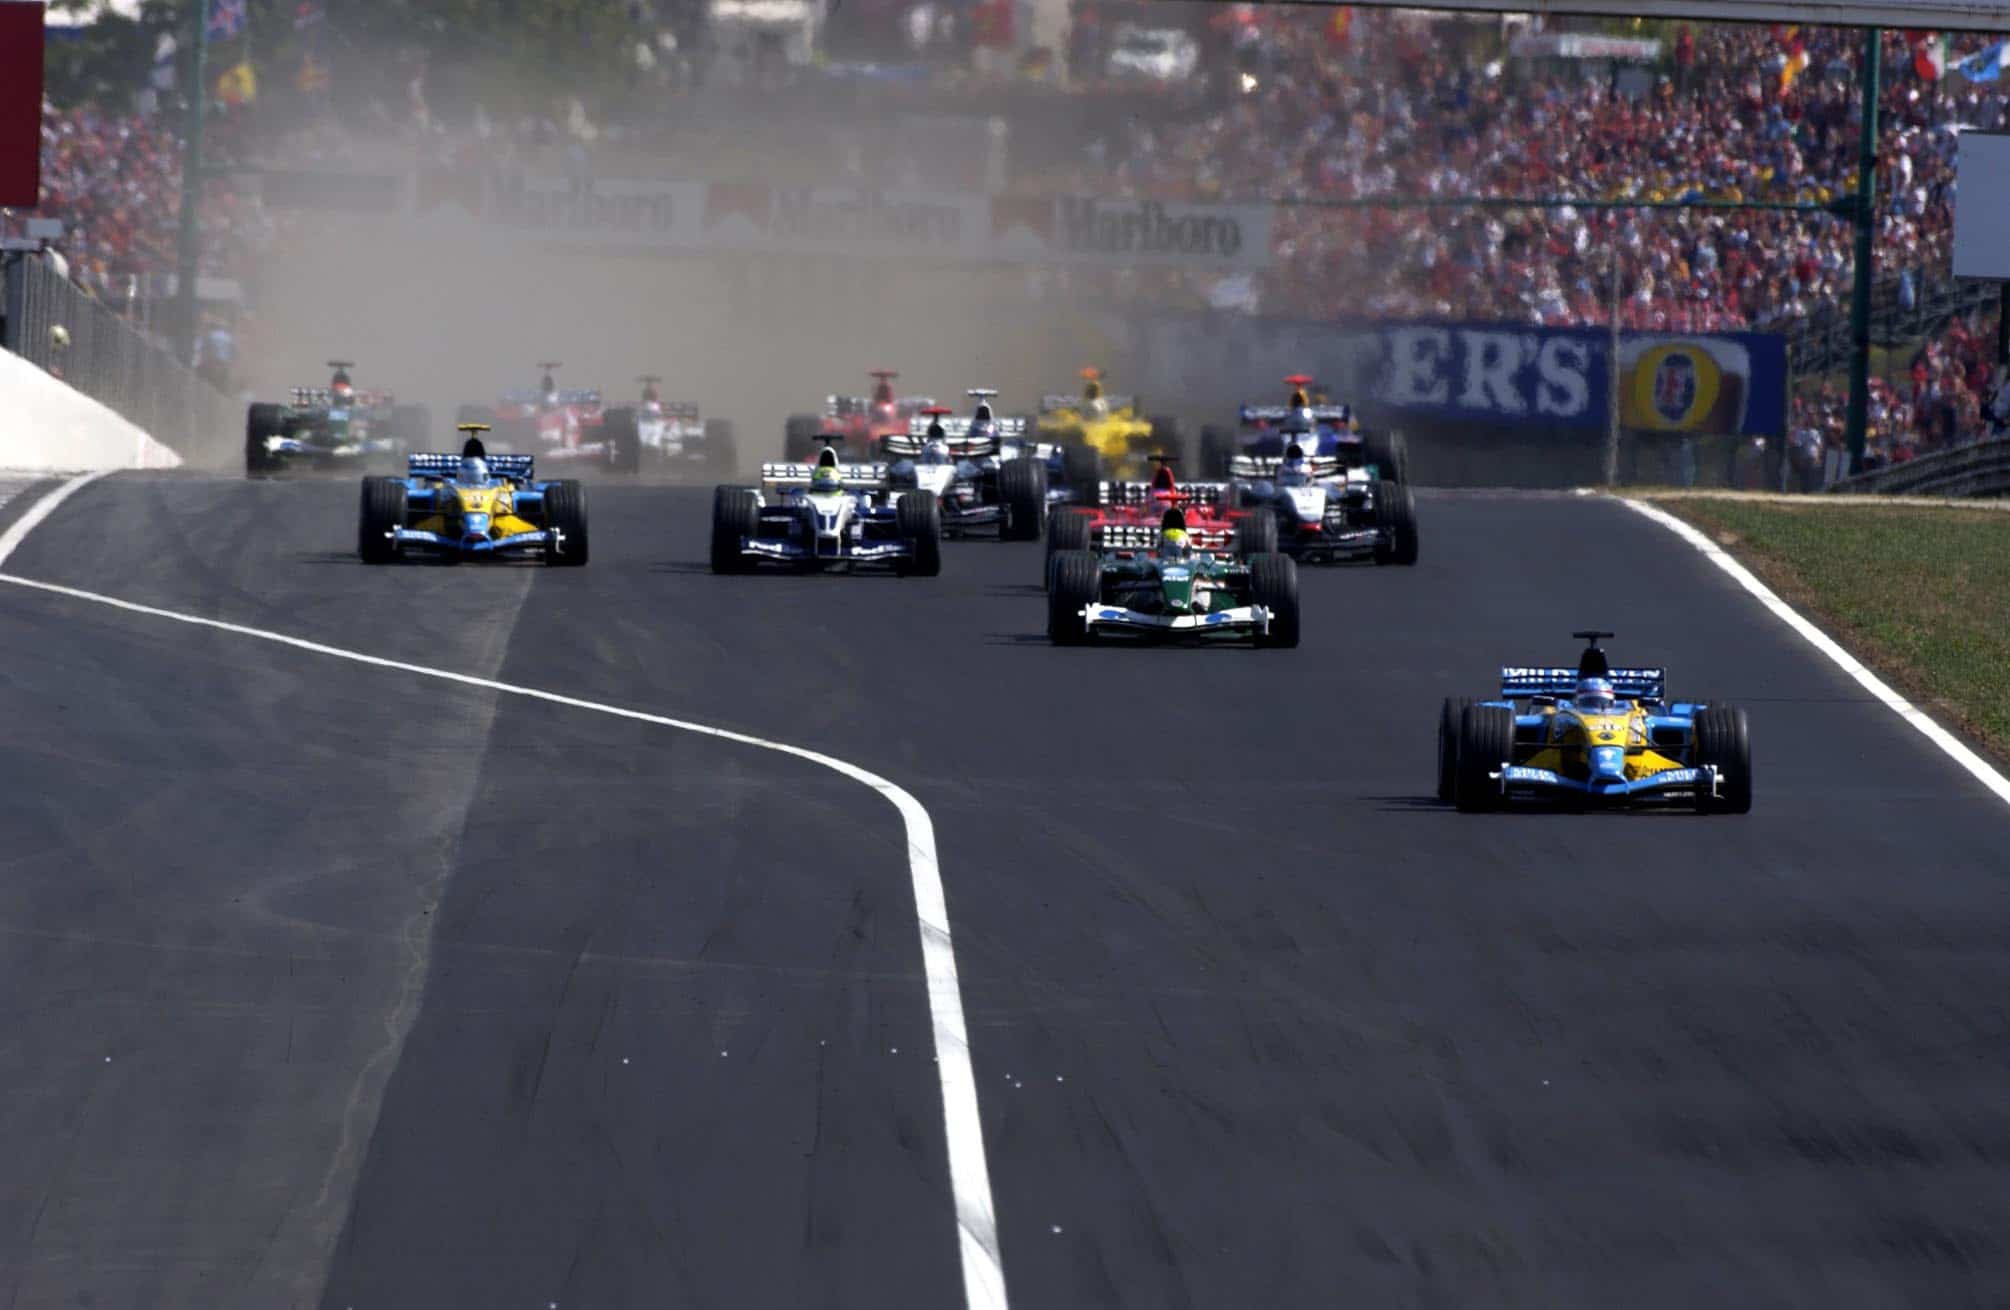 Hungarian GP F1 2003 start Photo Ferrari